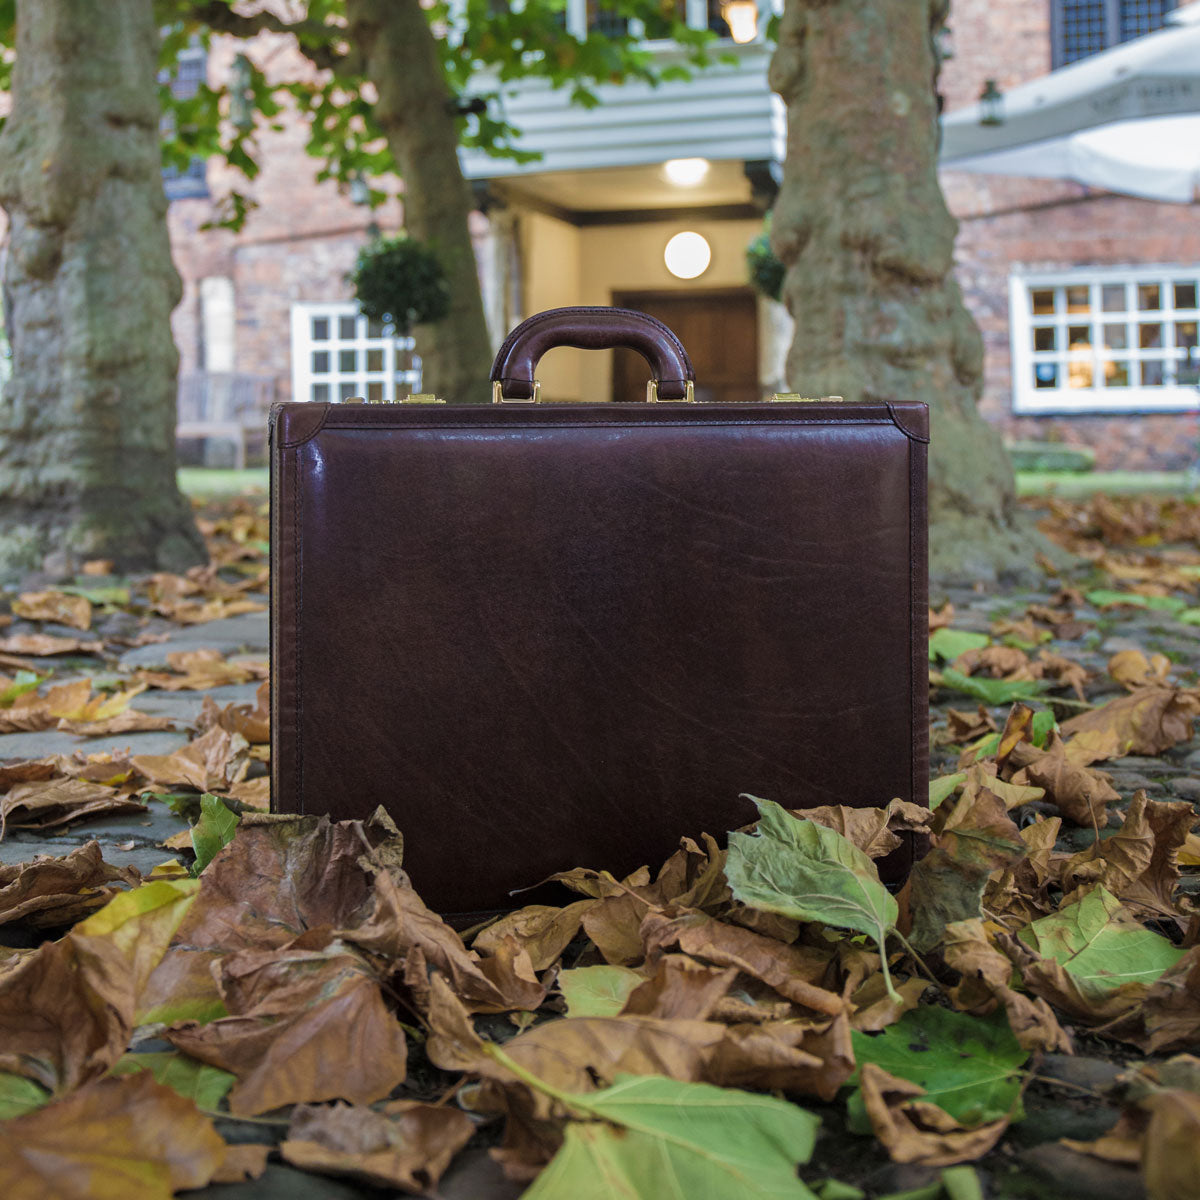 Image 8 of the 'Scanno' Slim Chestnut Veg-Tanned Leather Business Attaché Case